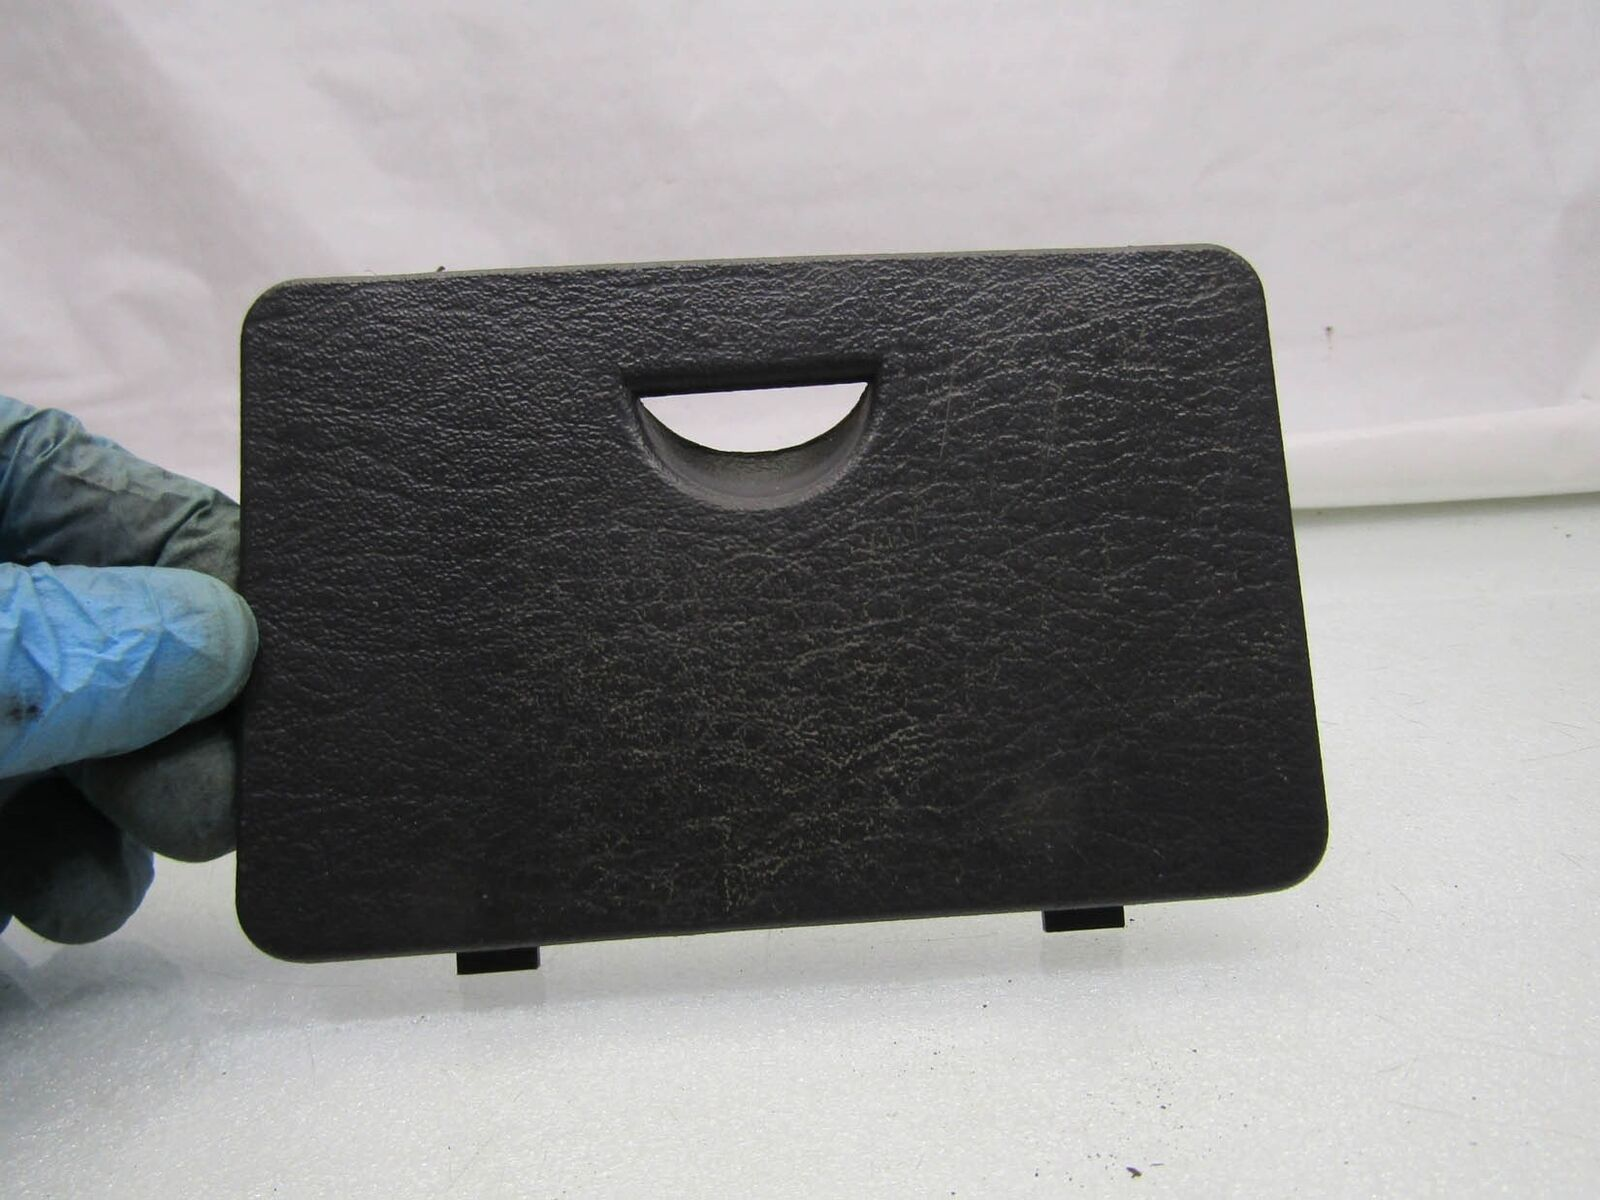 Jeep Cherokee XJ 84-01 facelift interior fuse box cover lid top panel  52216945AB 1 of 5Only 1 available ...